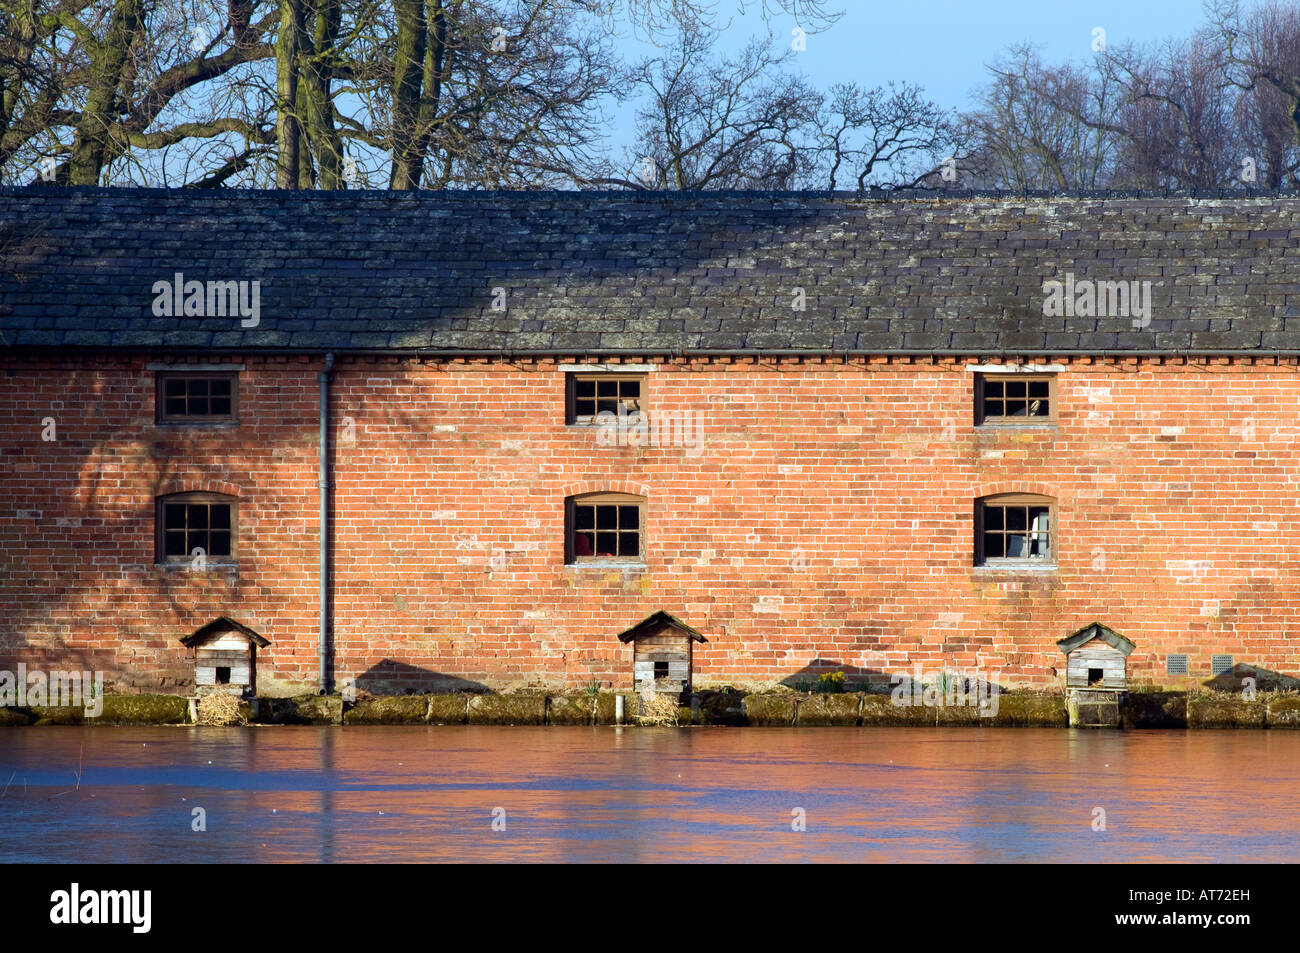 Ducks wooden  nesting boxes at Shugborough Mill pond in Staffordshire 'Great Britain' - Stock Image